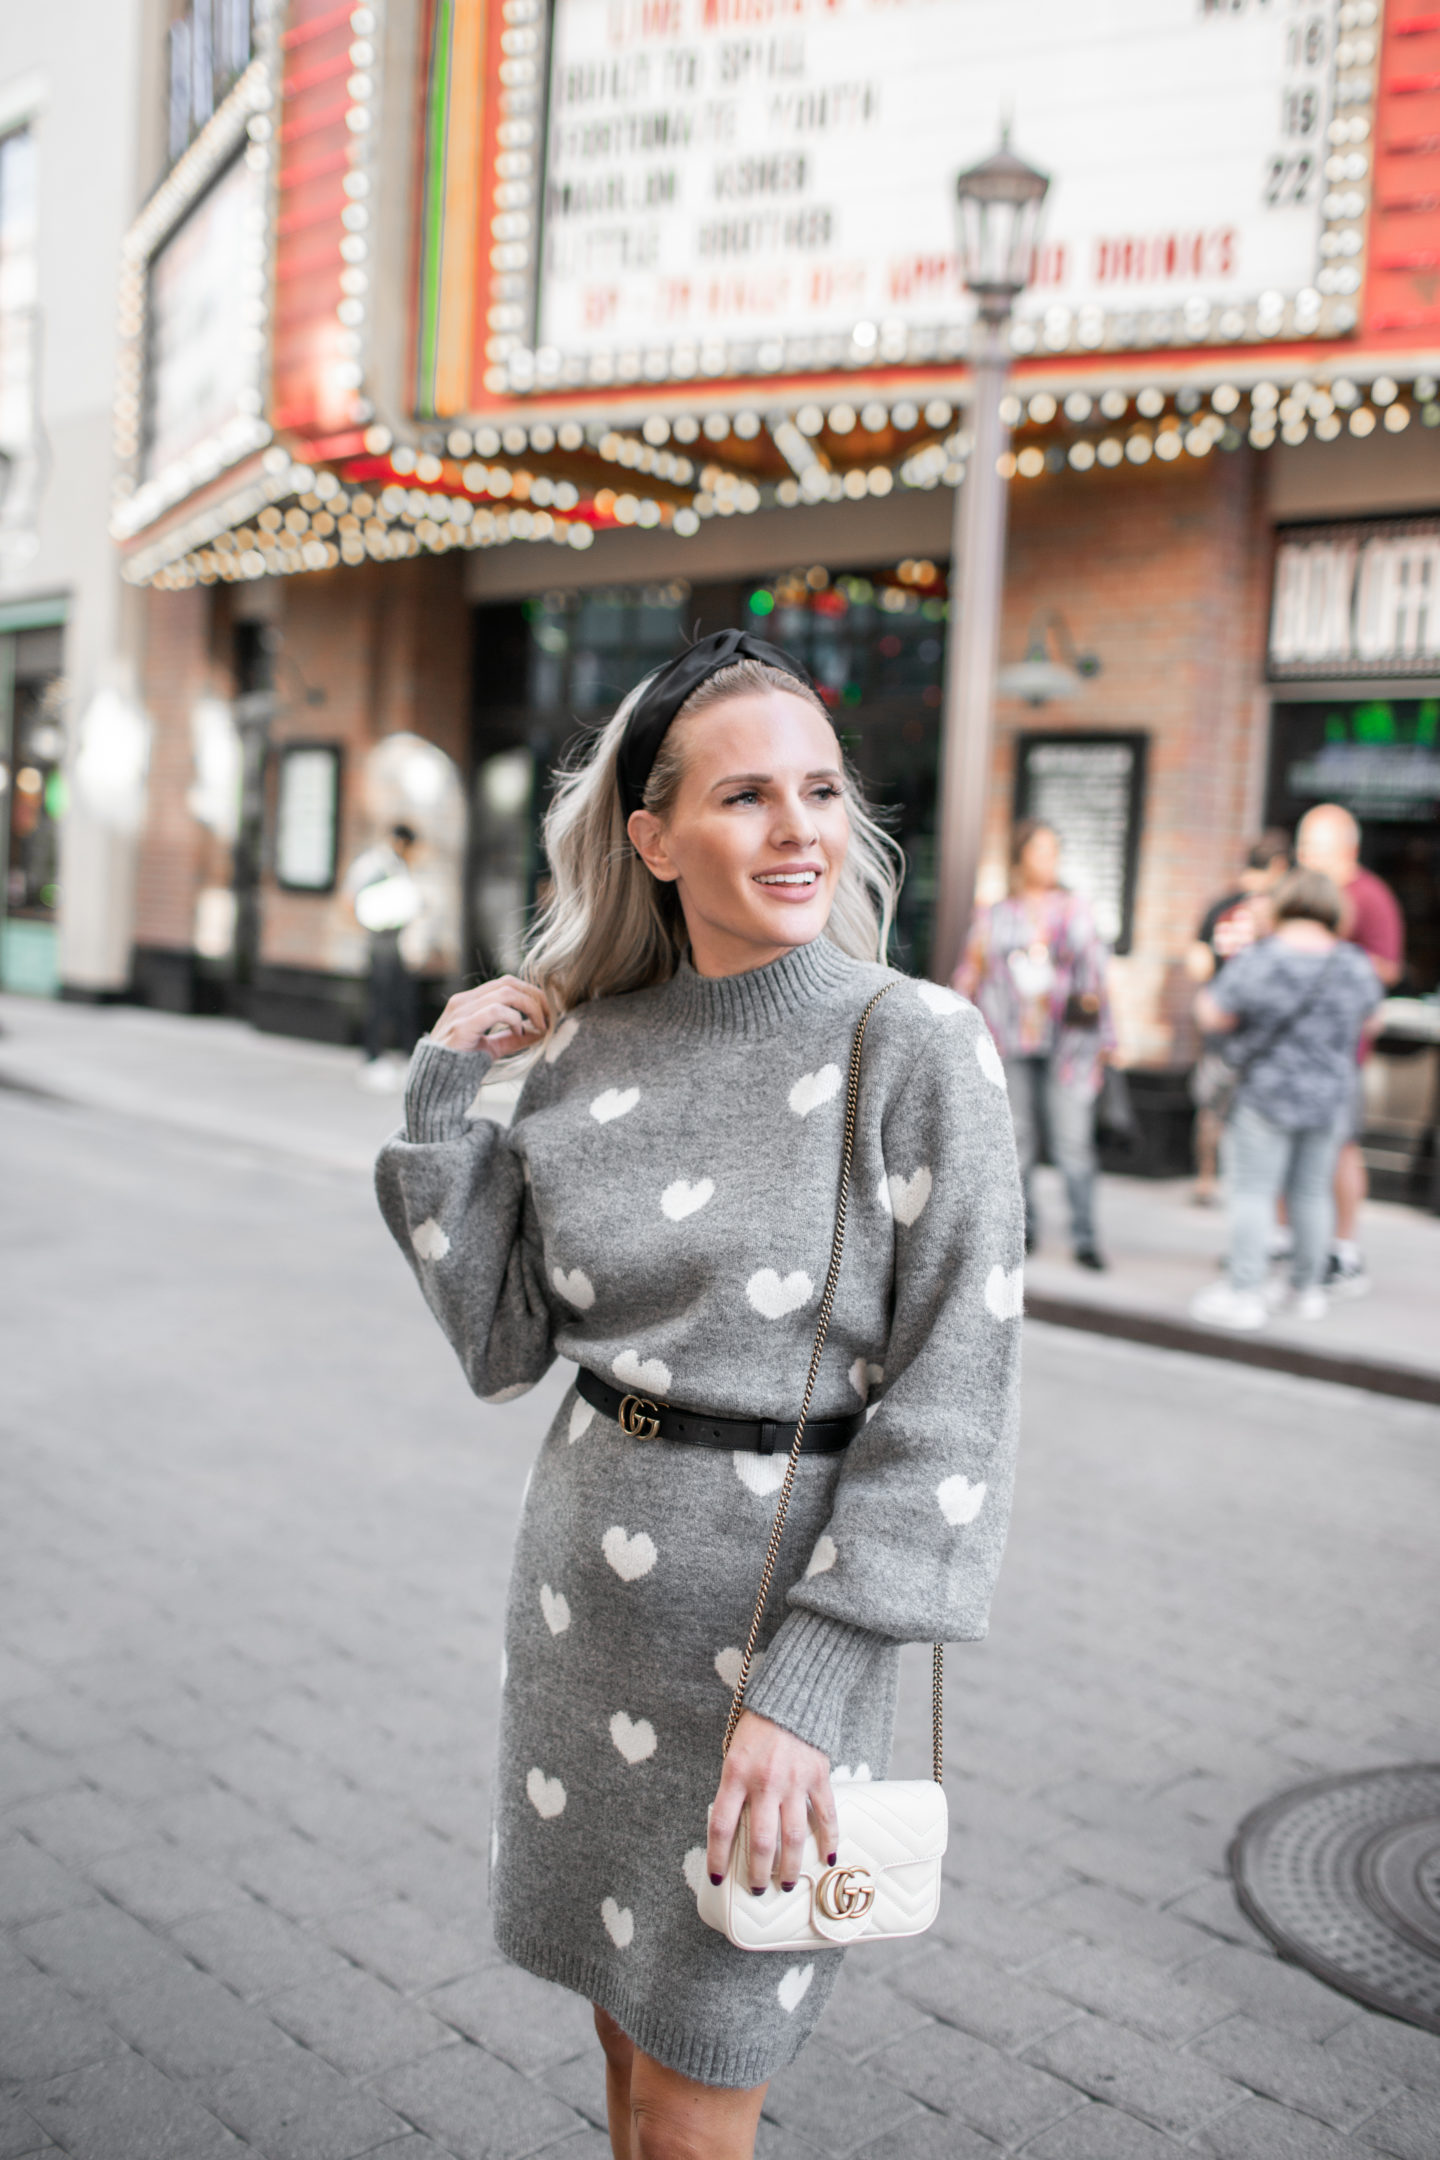 The Perfect Knit Sweater Dress for Valentine's Day styled by top Los Angeles fashion blog, Dress Me Blonde: image of a blonde woman wearing a Lovers + Friends love heart knit sweater dress.